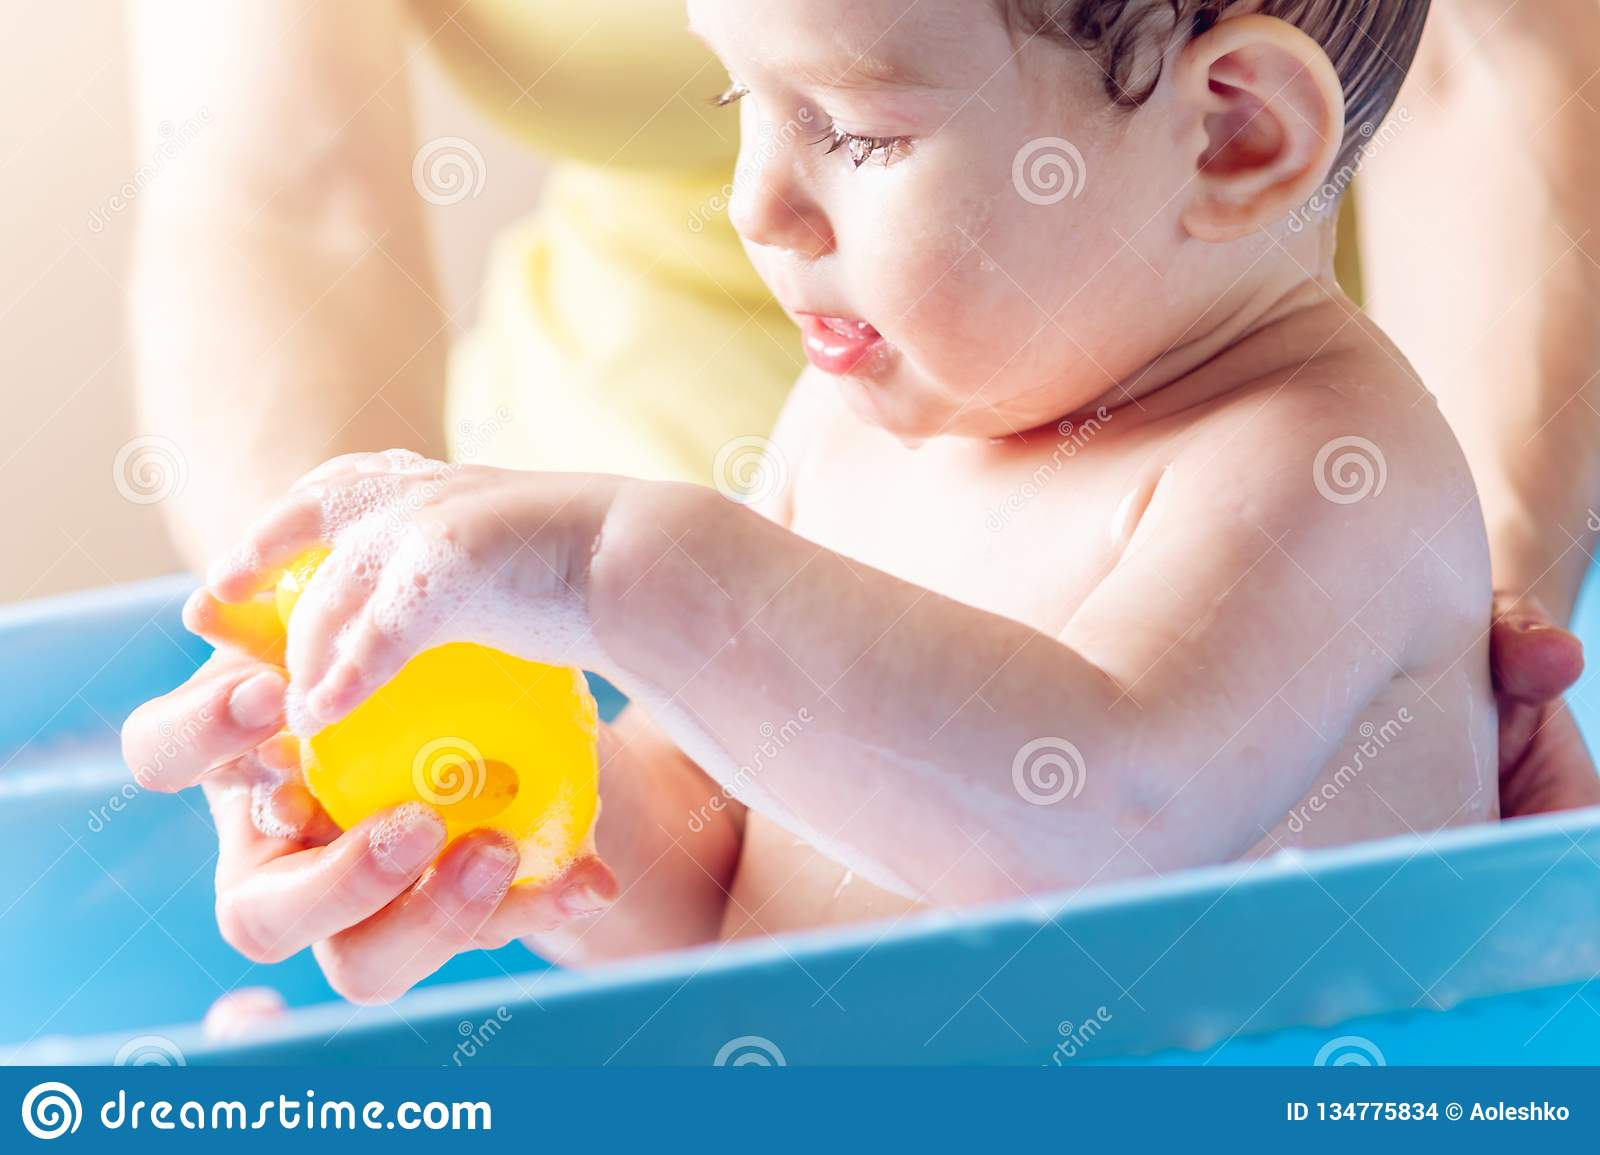 Mom washing little boy in a blue bath. Child is bathing with a yellow duck. Hygiene and water treatment with the baby